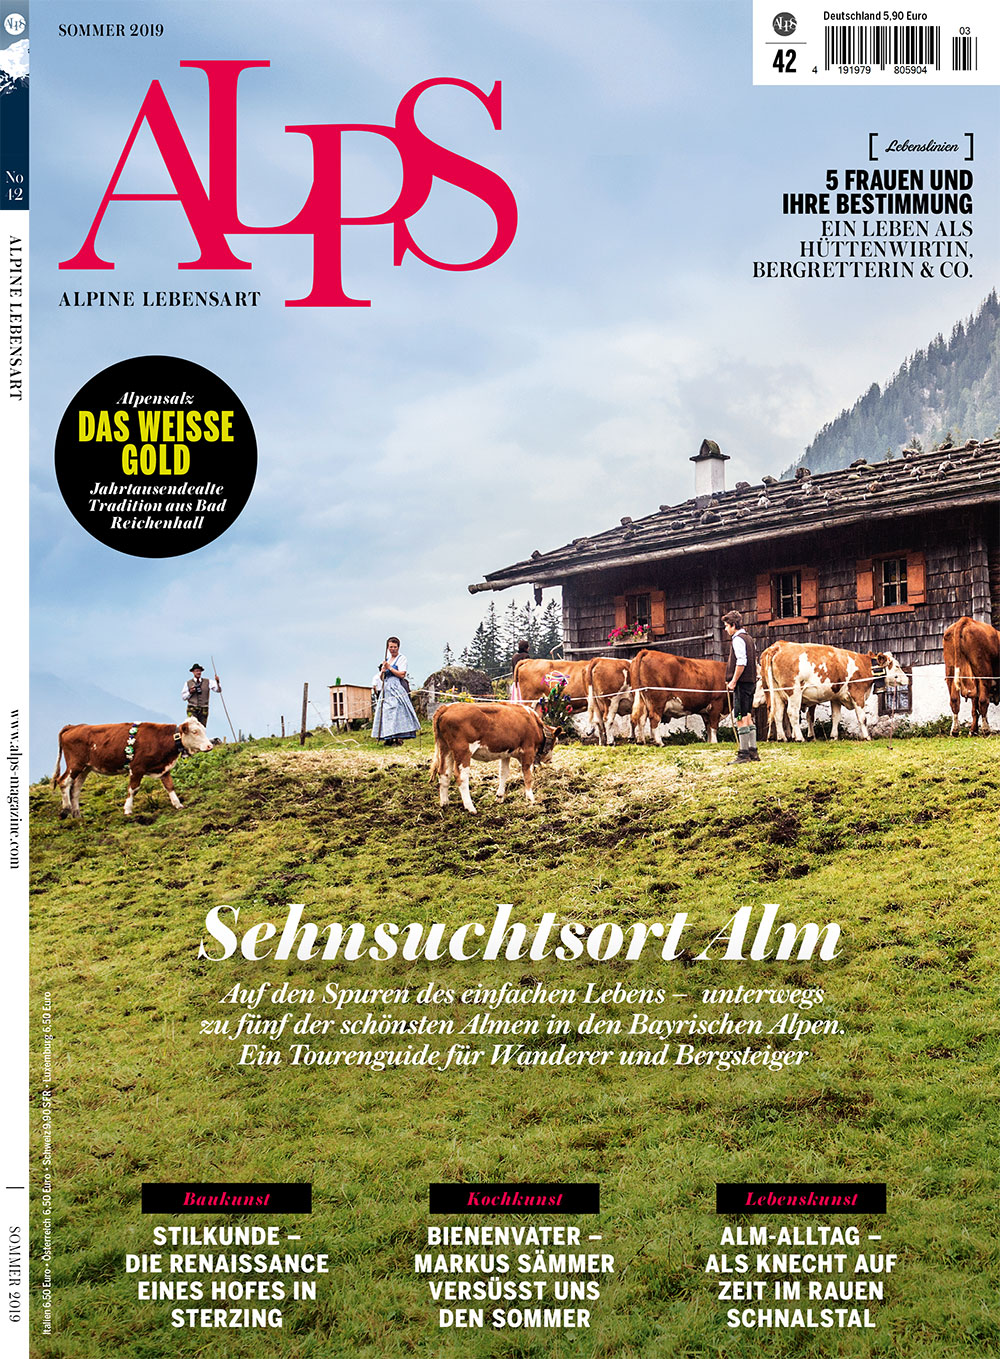 ALPS #42 / Sommer 2019 / Cover